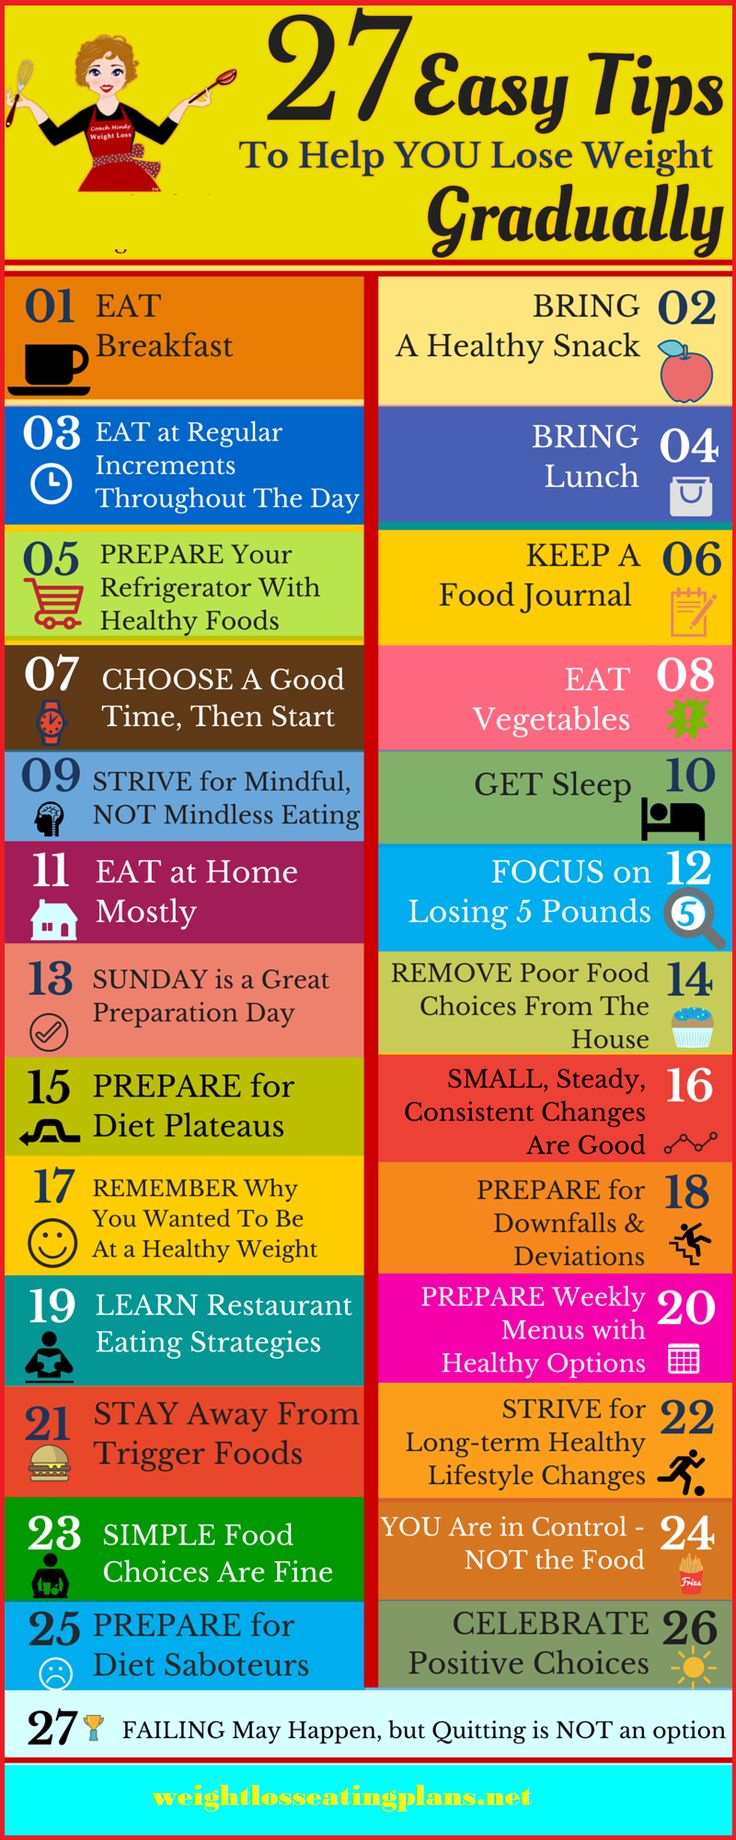 27 easy tips to help you lose weight gradually, Weight loss eating plans programs #weightloss .#diet #calories #diettips #womenhealth